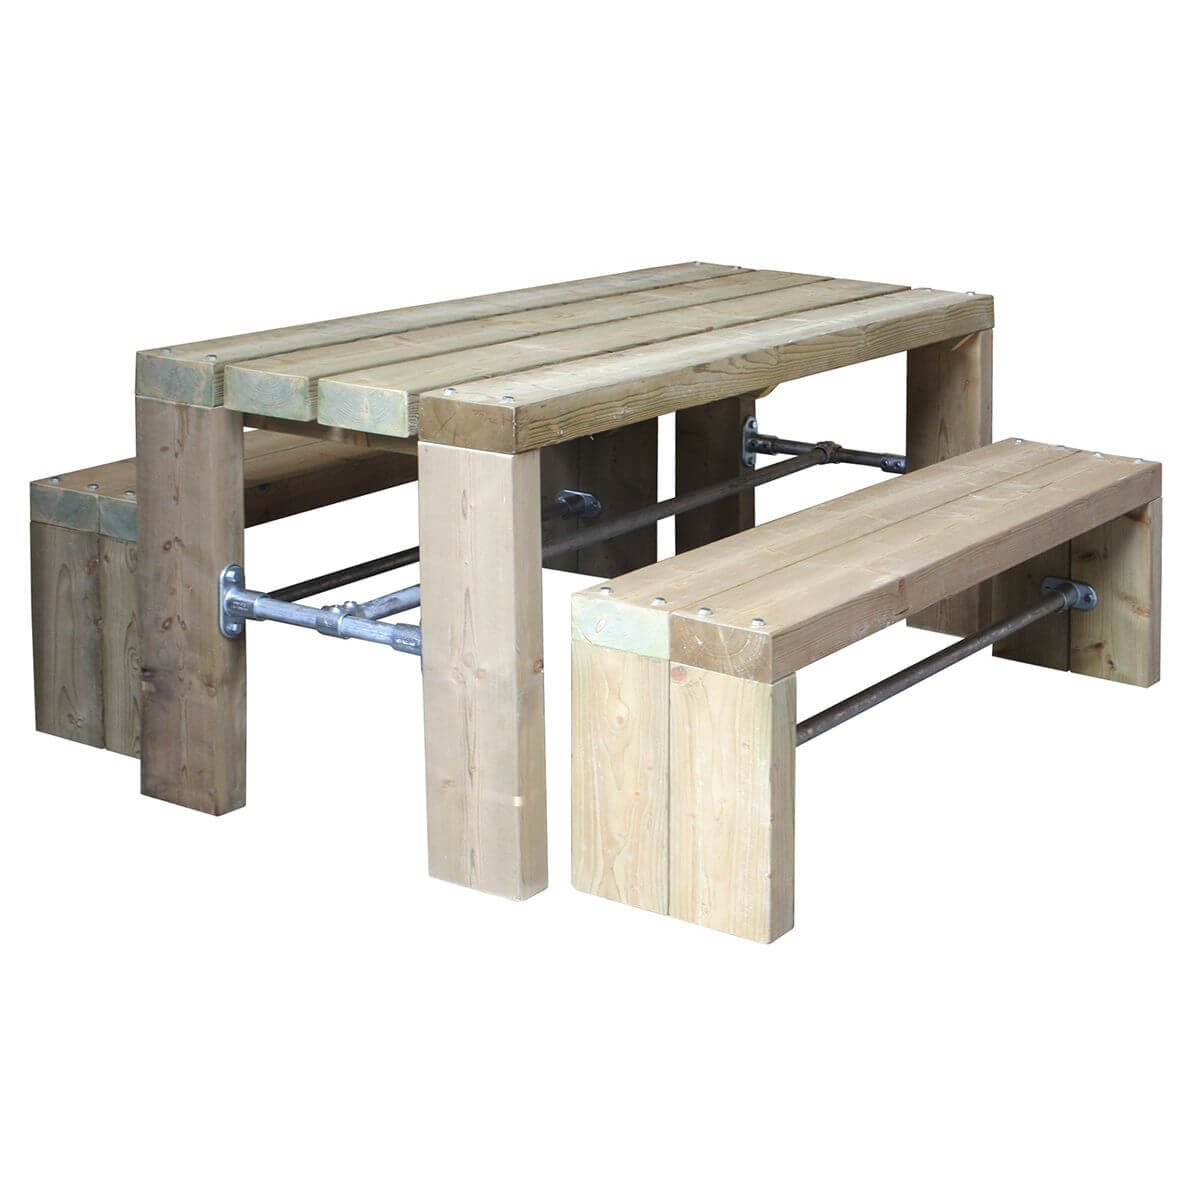 hsquare-table1-min